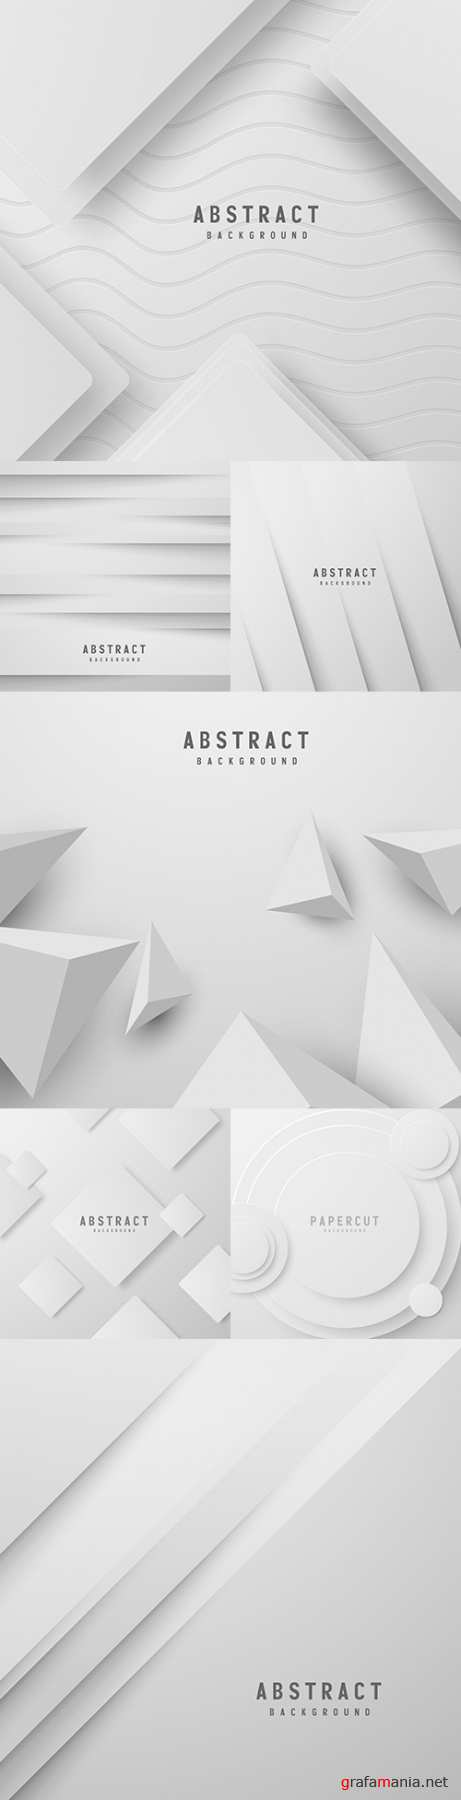 Topography white paper abstract background paper